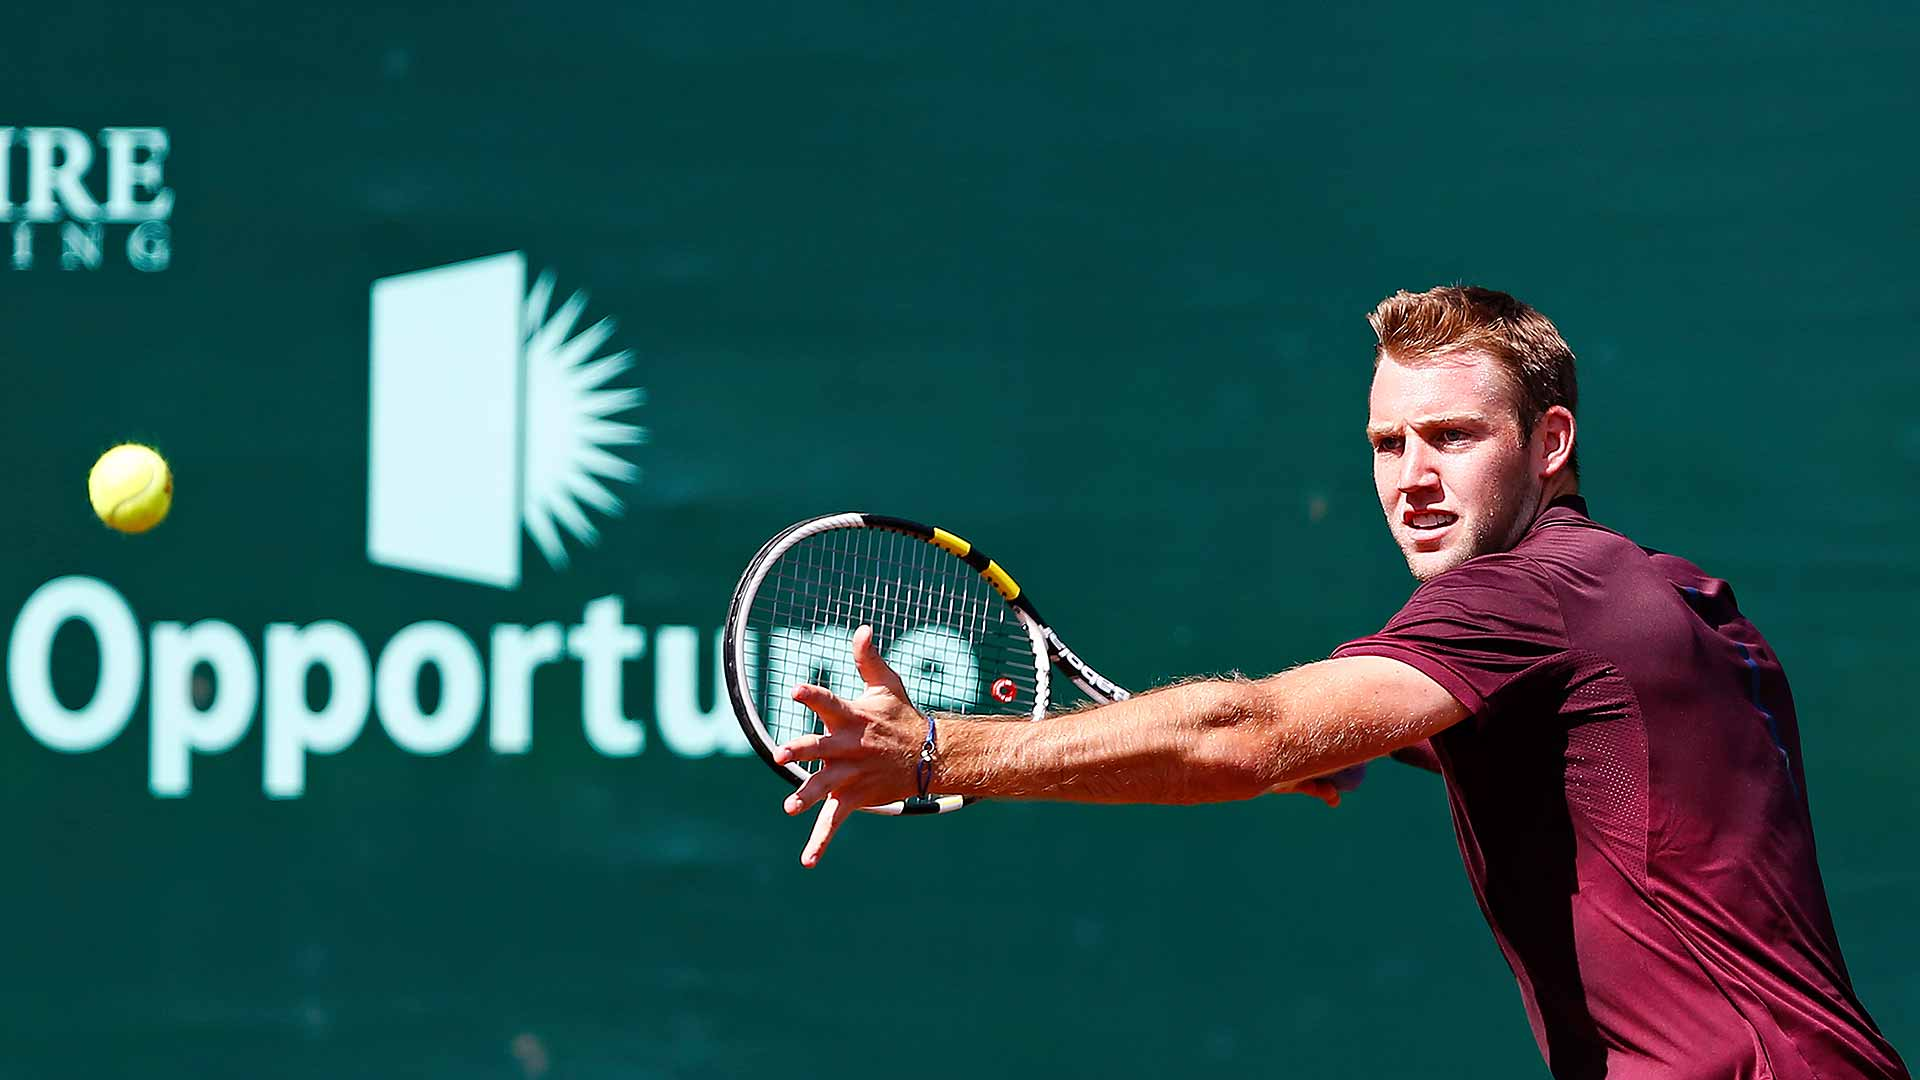 Jack Sock advances to the quarter-finals in Houston.